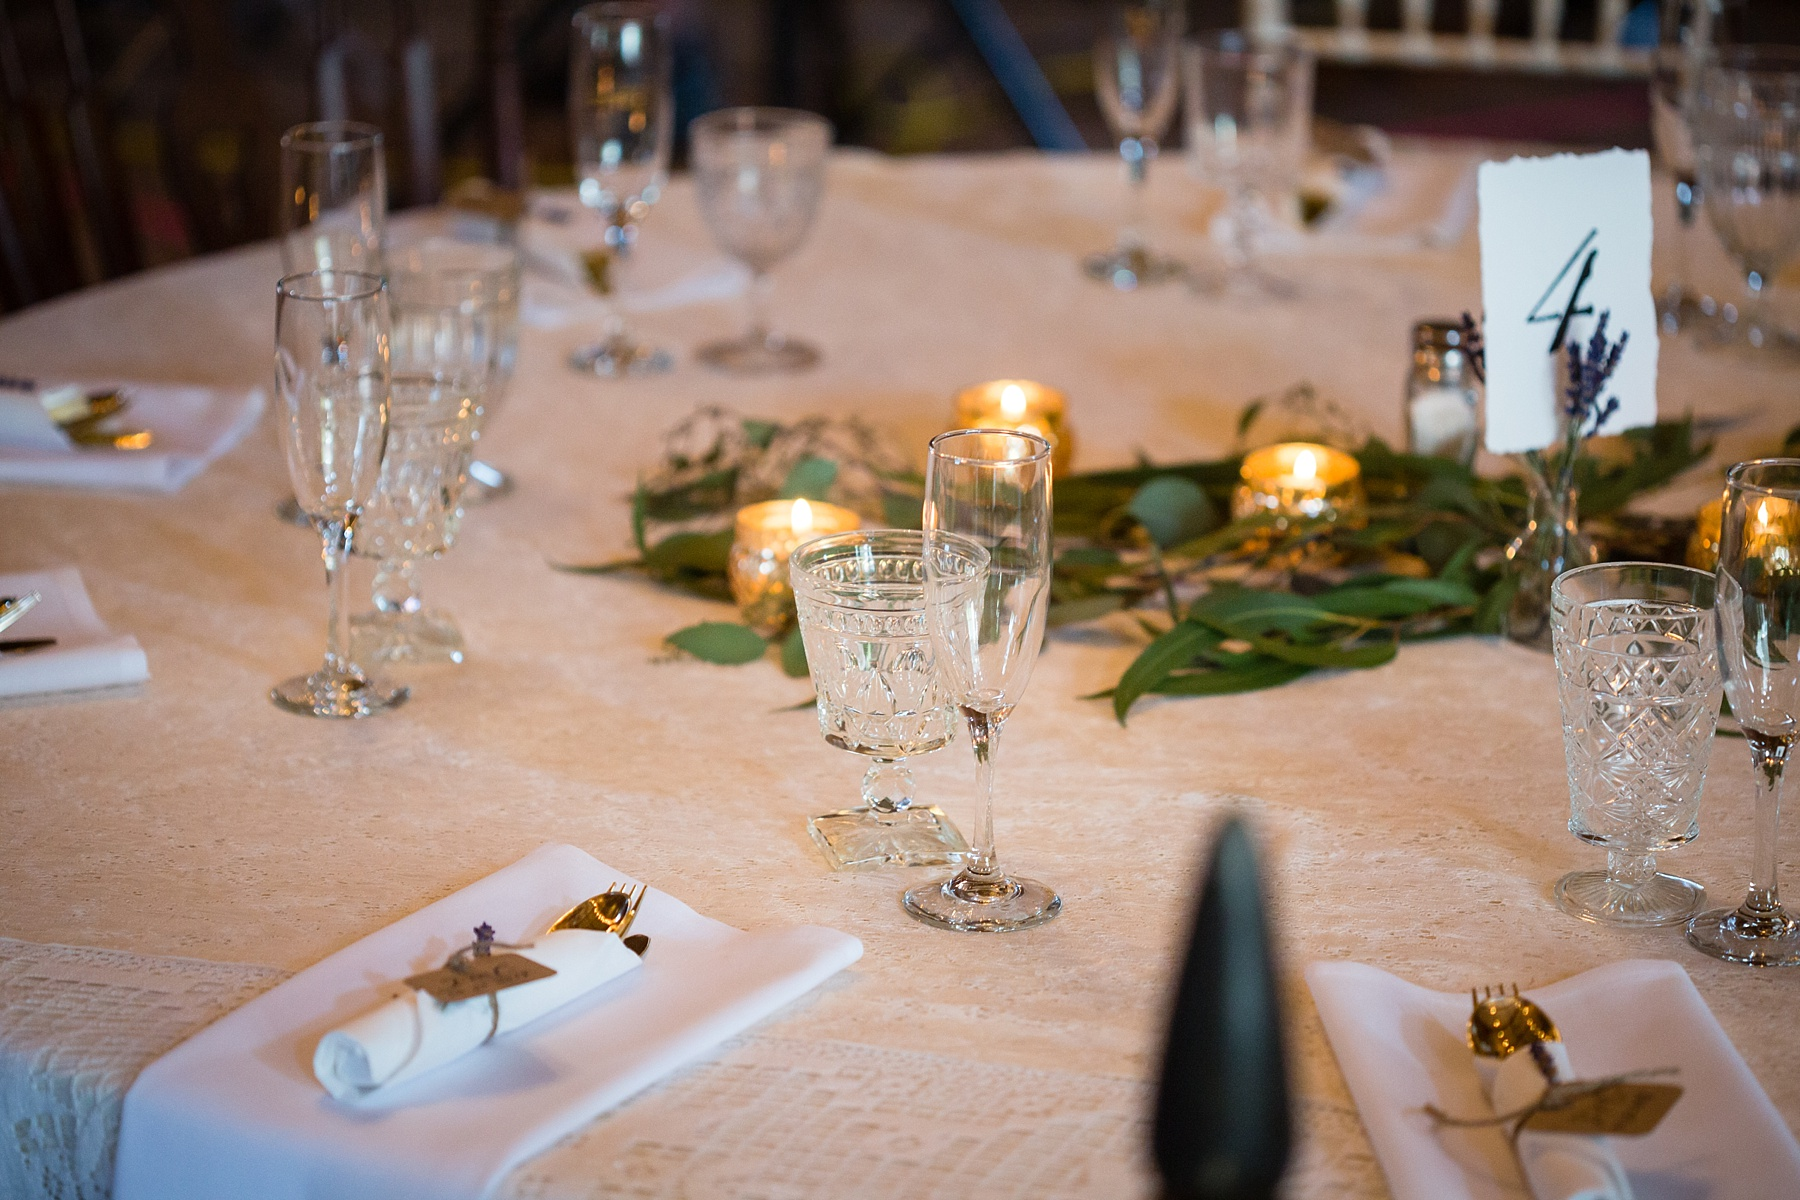 Brandon_Shafer_Photography_Traverse_City_Wedding_0046.jpg